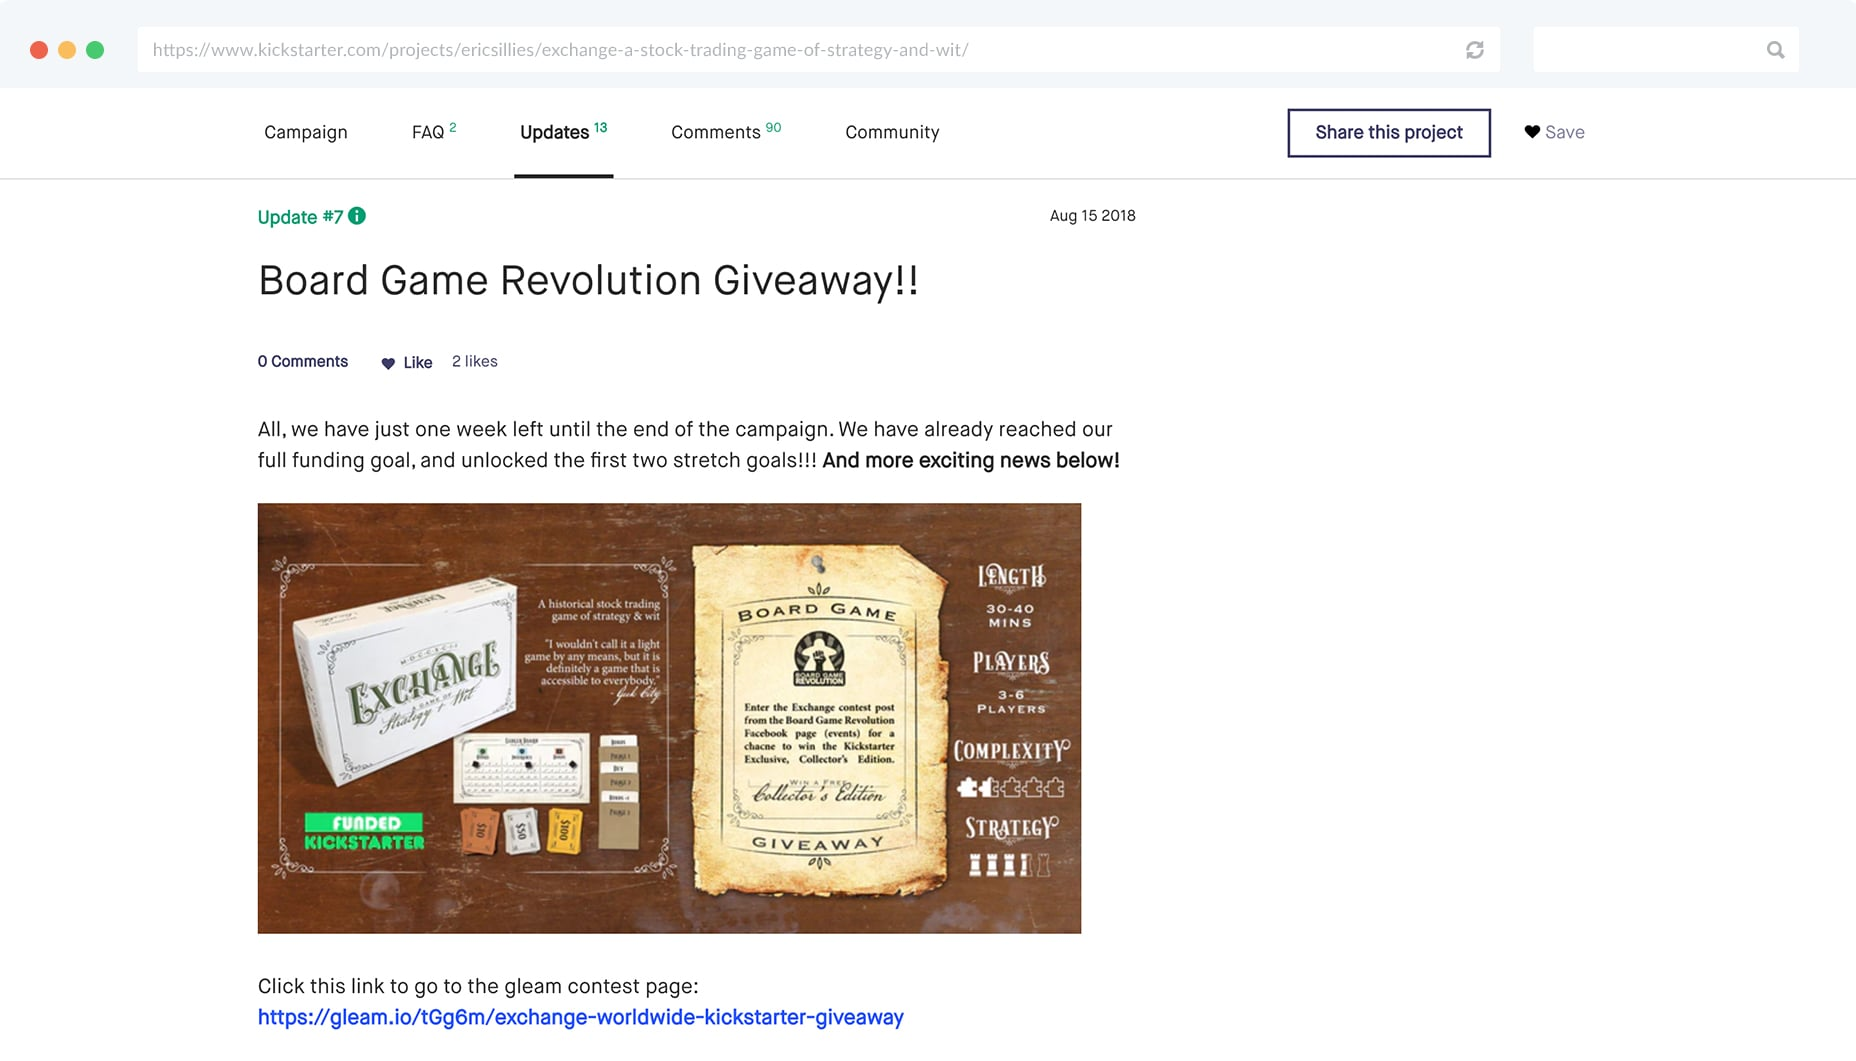 Link to Gleam Giveaway From Kickstarter